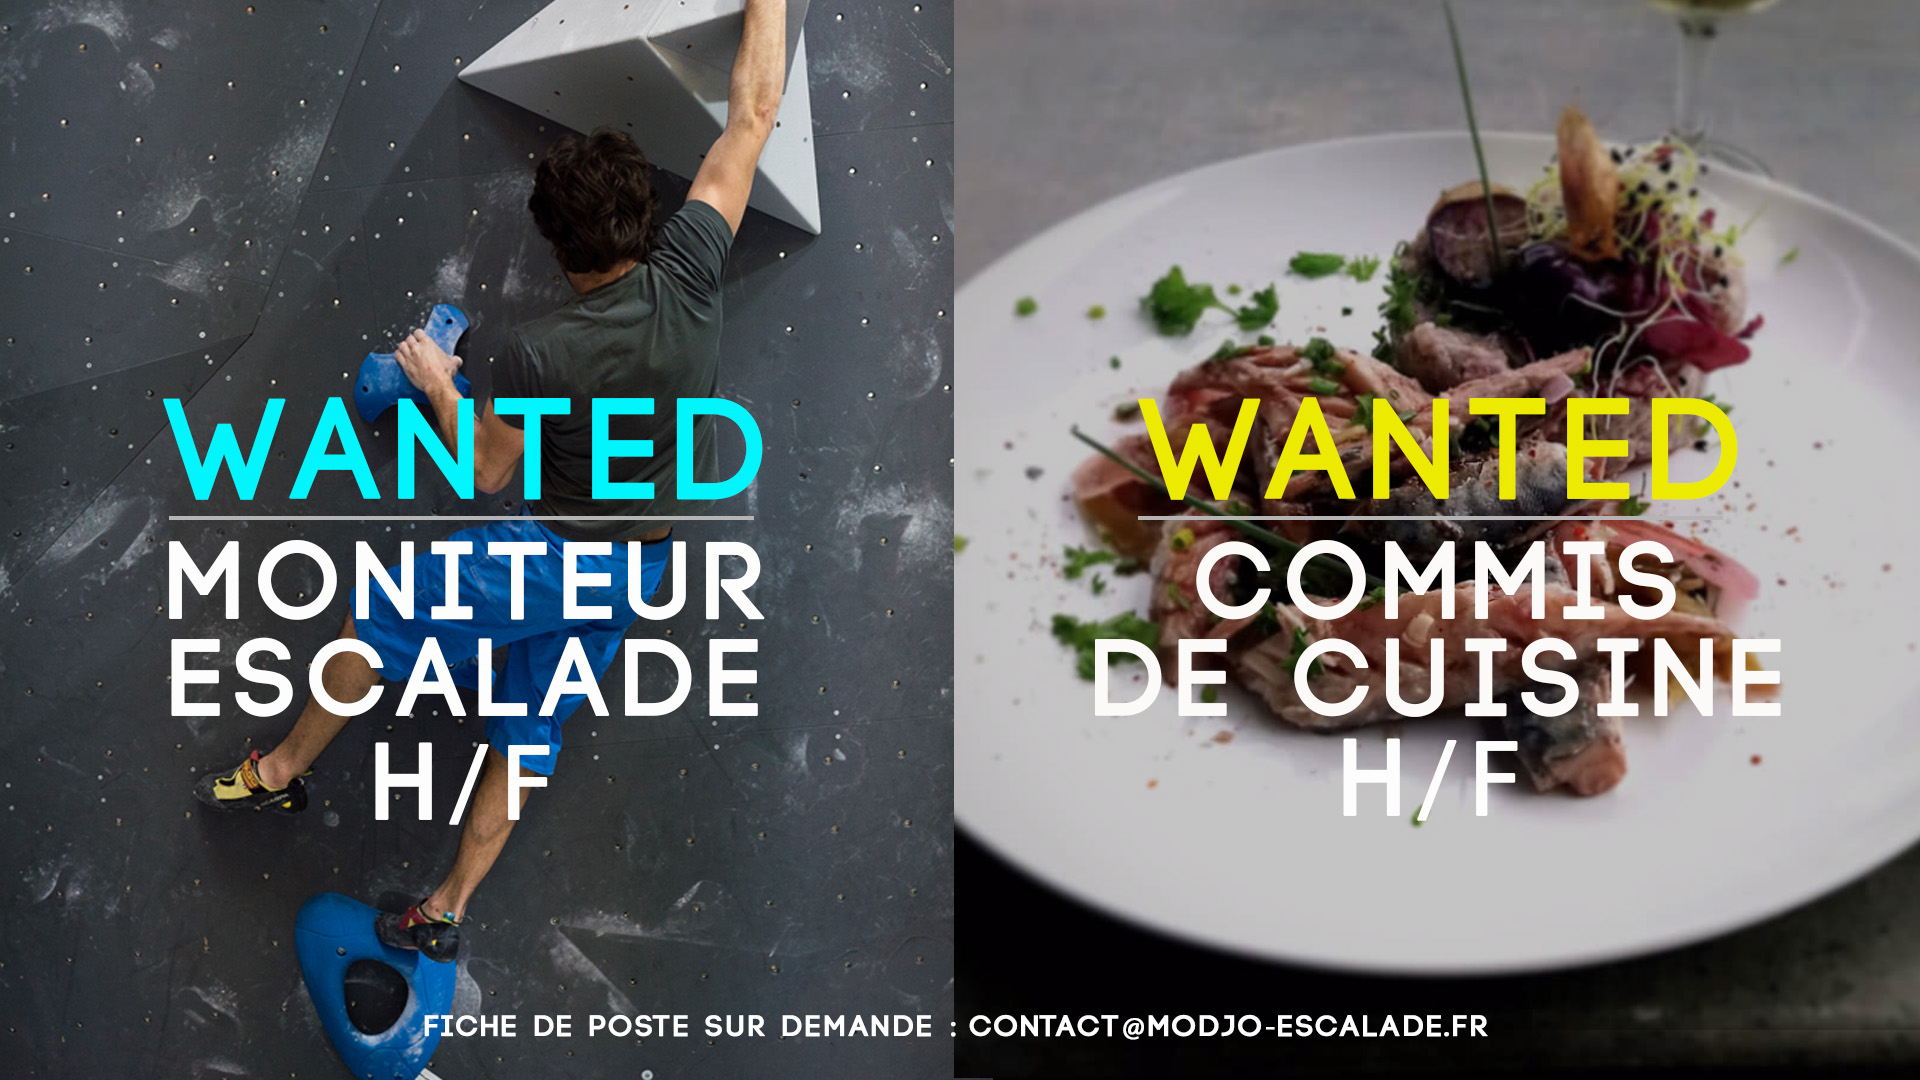 WANTED Commis Moniteur